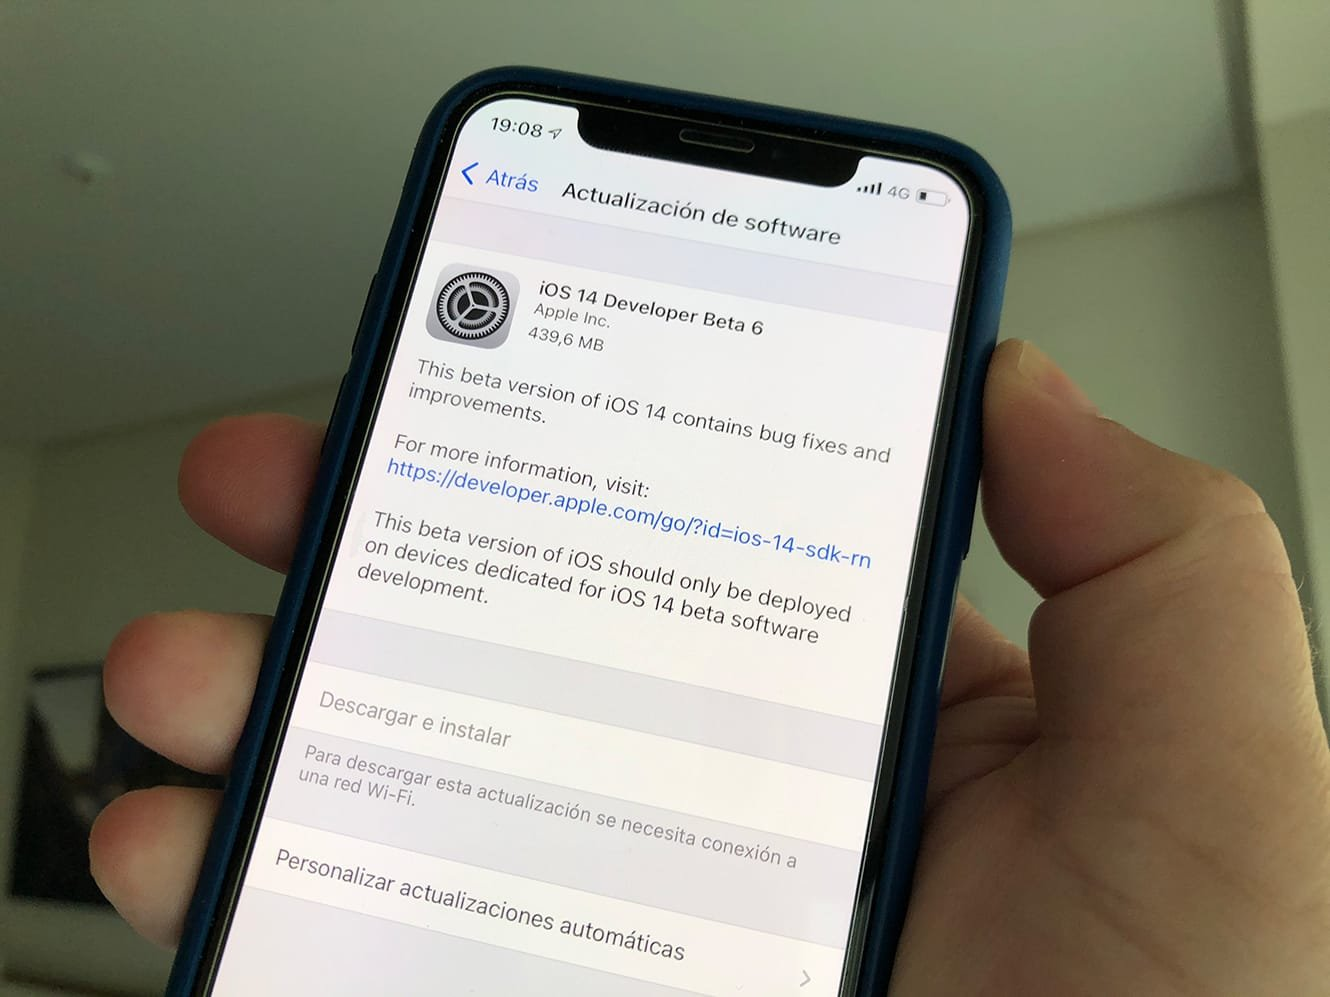 iOS 14 Developer Beta 6